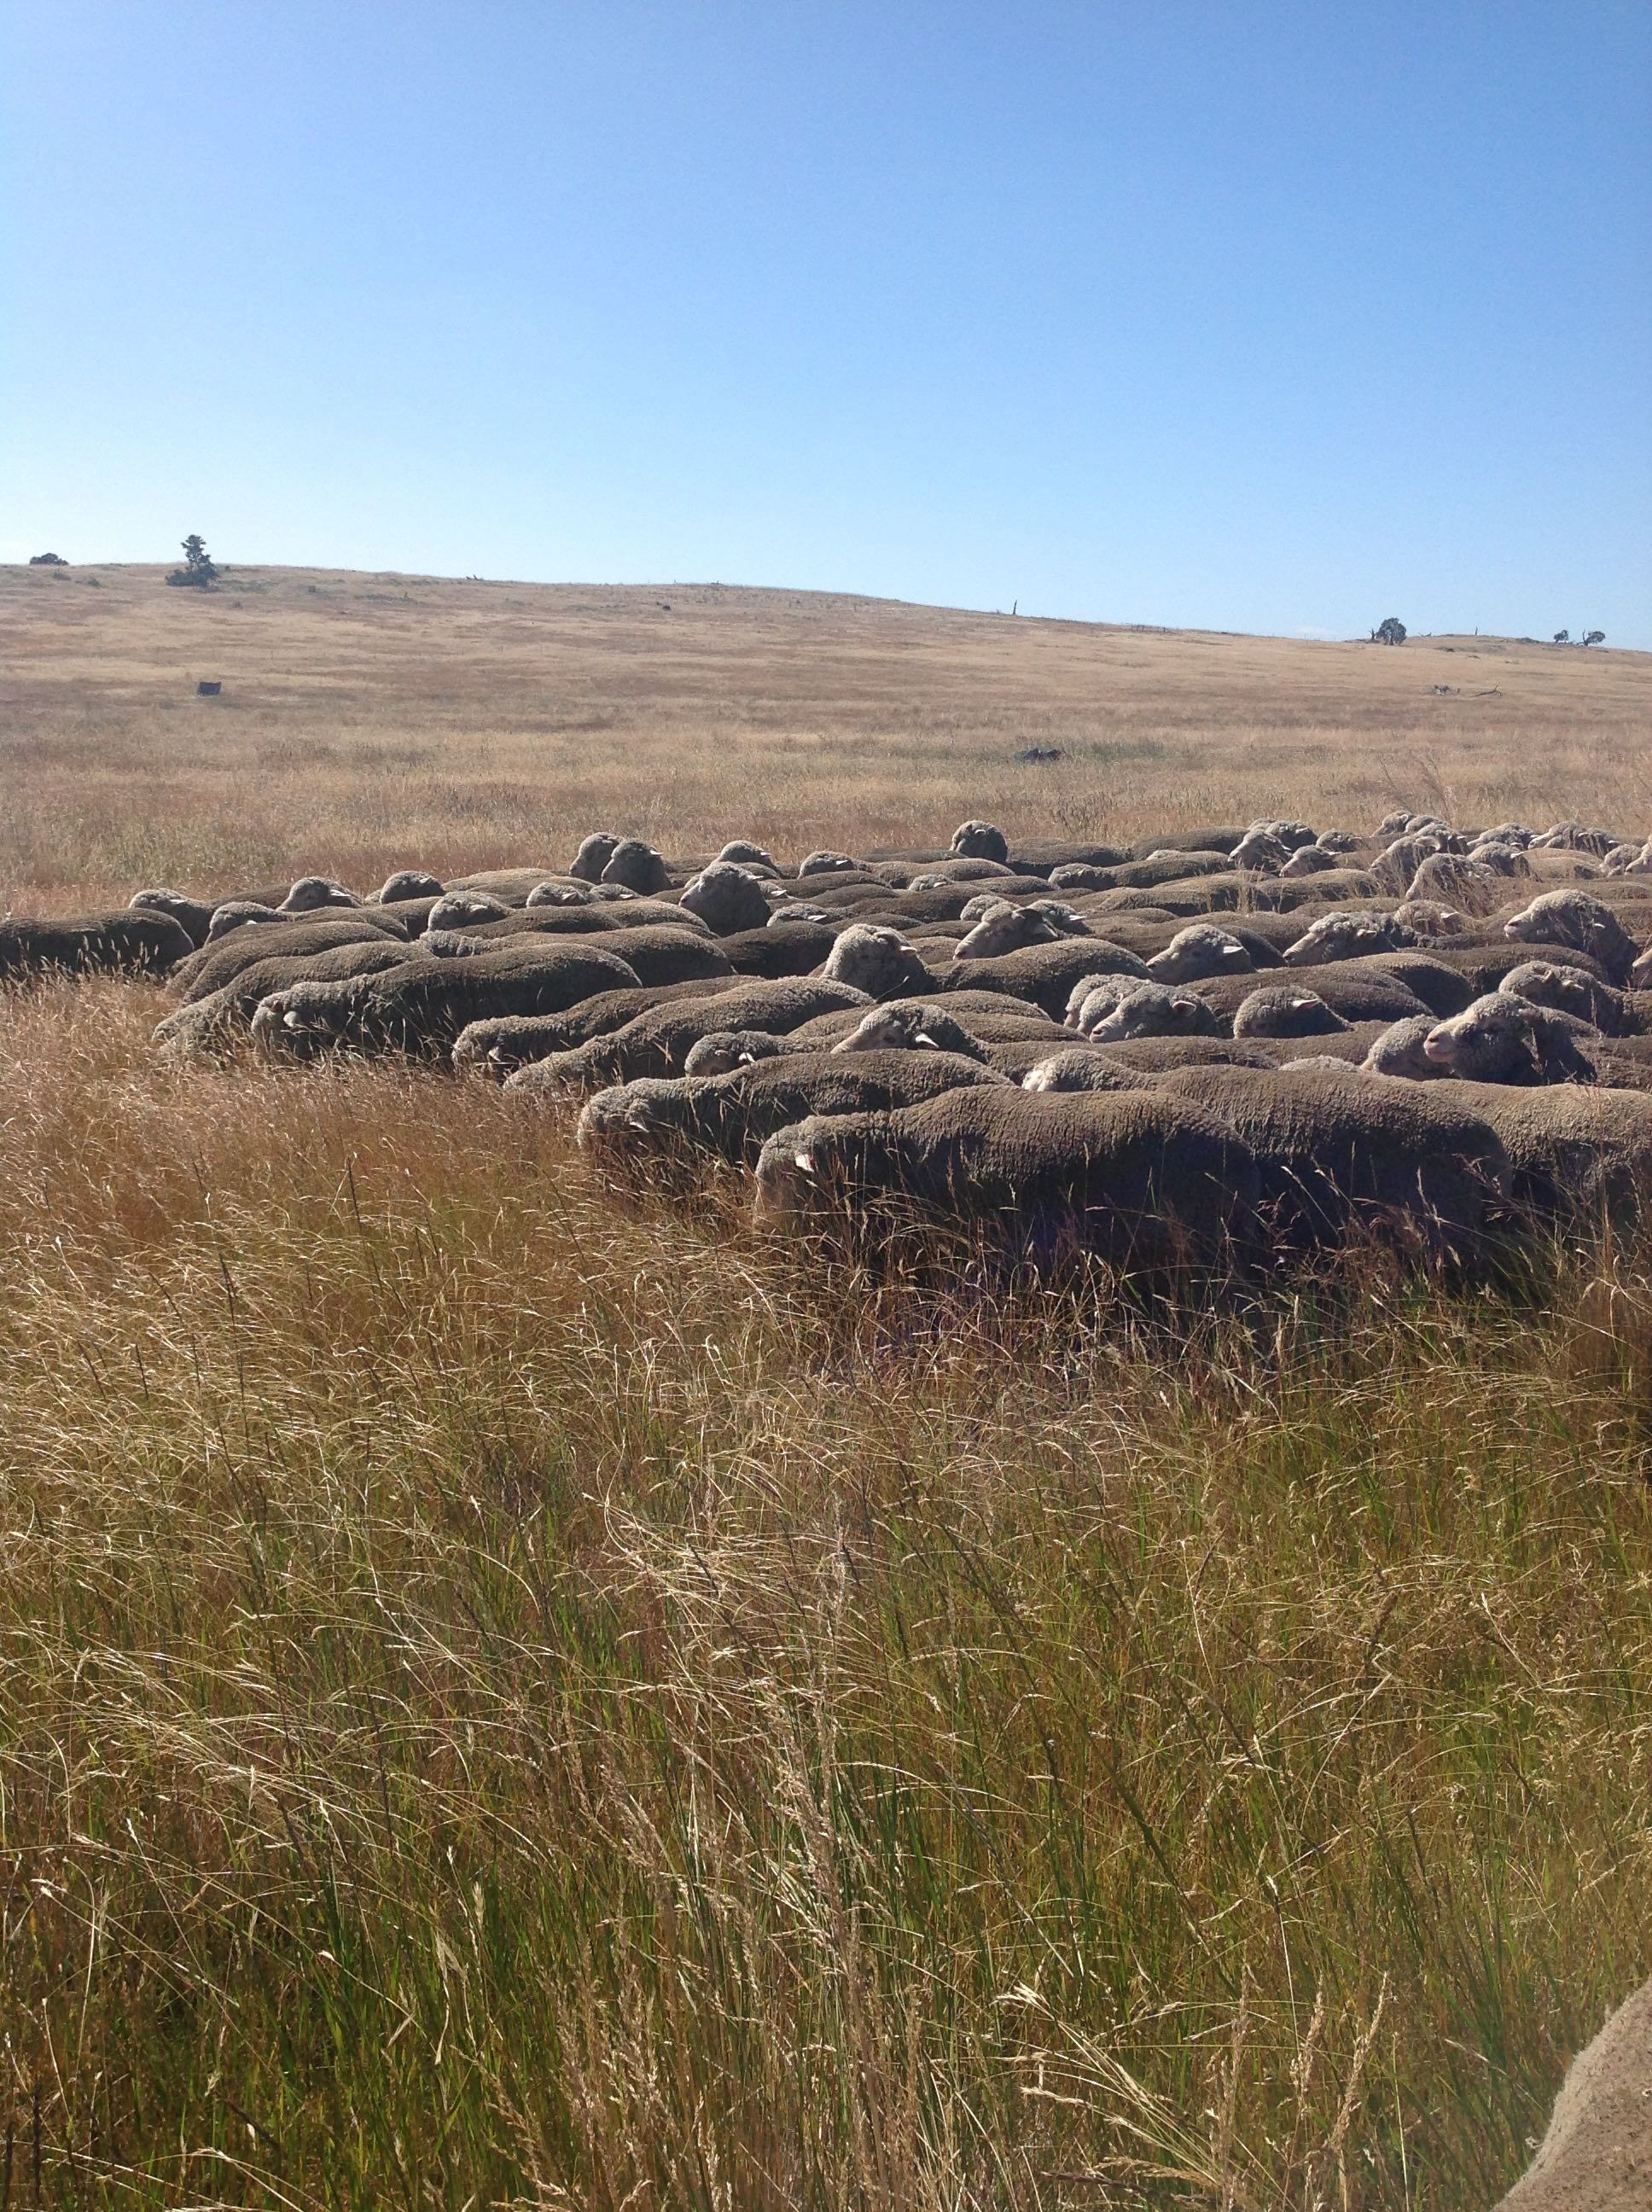 """This photo gives you an idea of the diversity of grasses this year. This was taken in a """"cocksfoot-dominated ryegrass"""" paddock, where normally I see just those two grasses, the occasional annual grass, dandelions and clover. Many of these grasses are ones I don't recognise."""